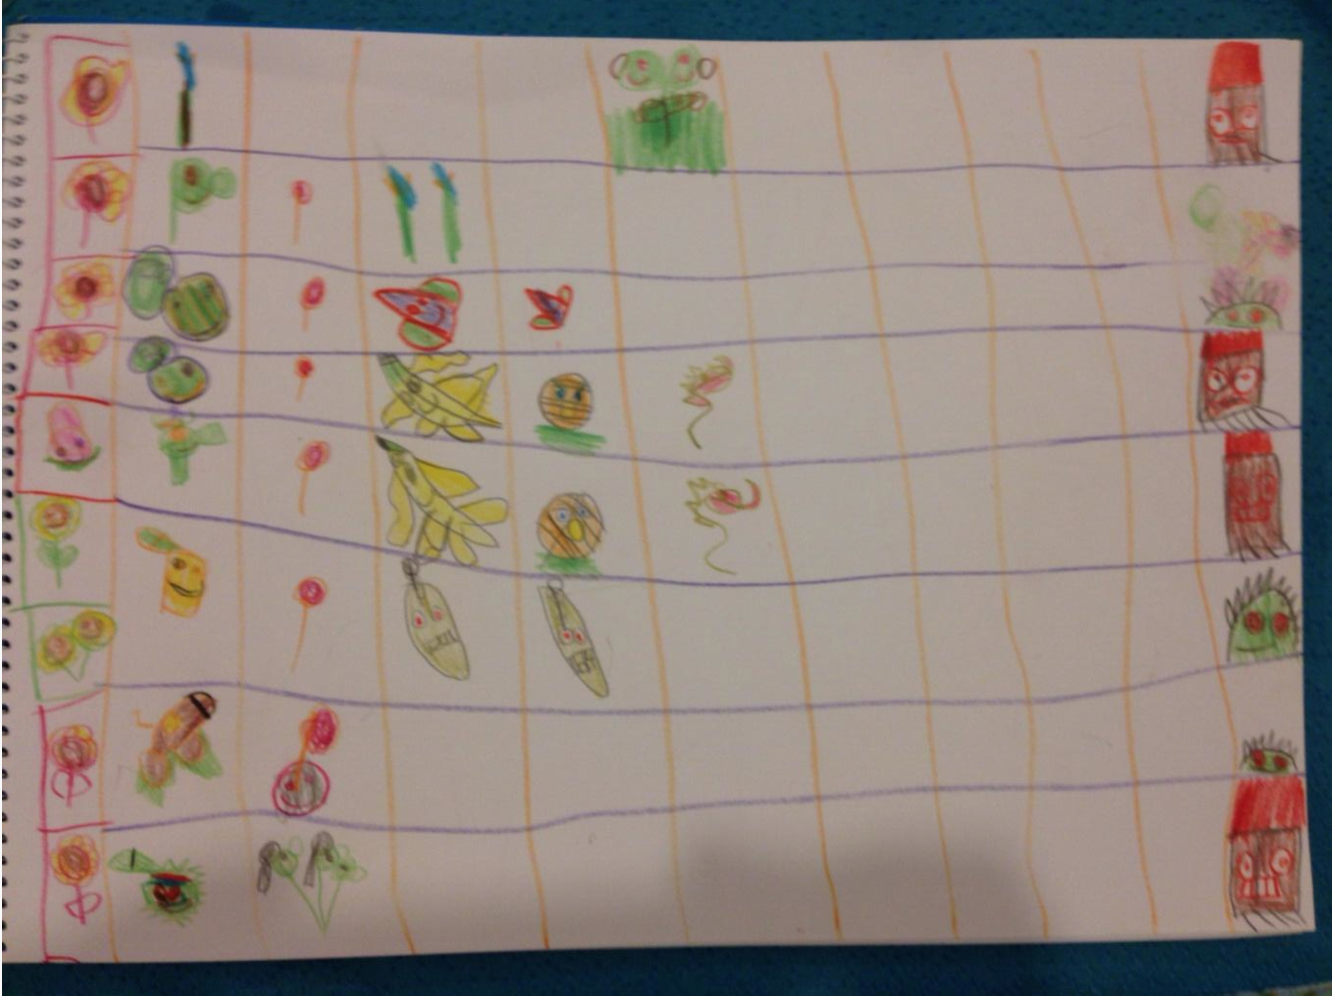 """my son has limited screen time so he plays @PlantsvsZombies on paper"" says Boian Tzonev in an insightful t weet ."